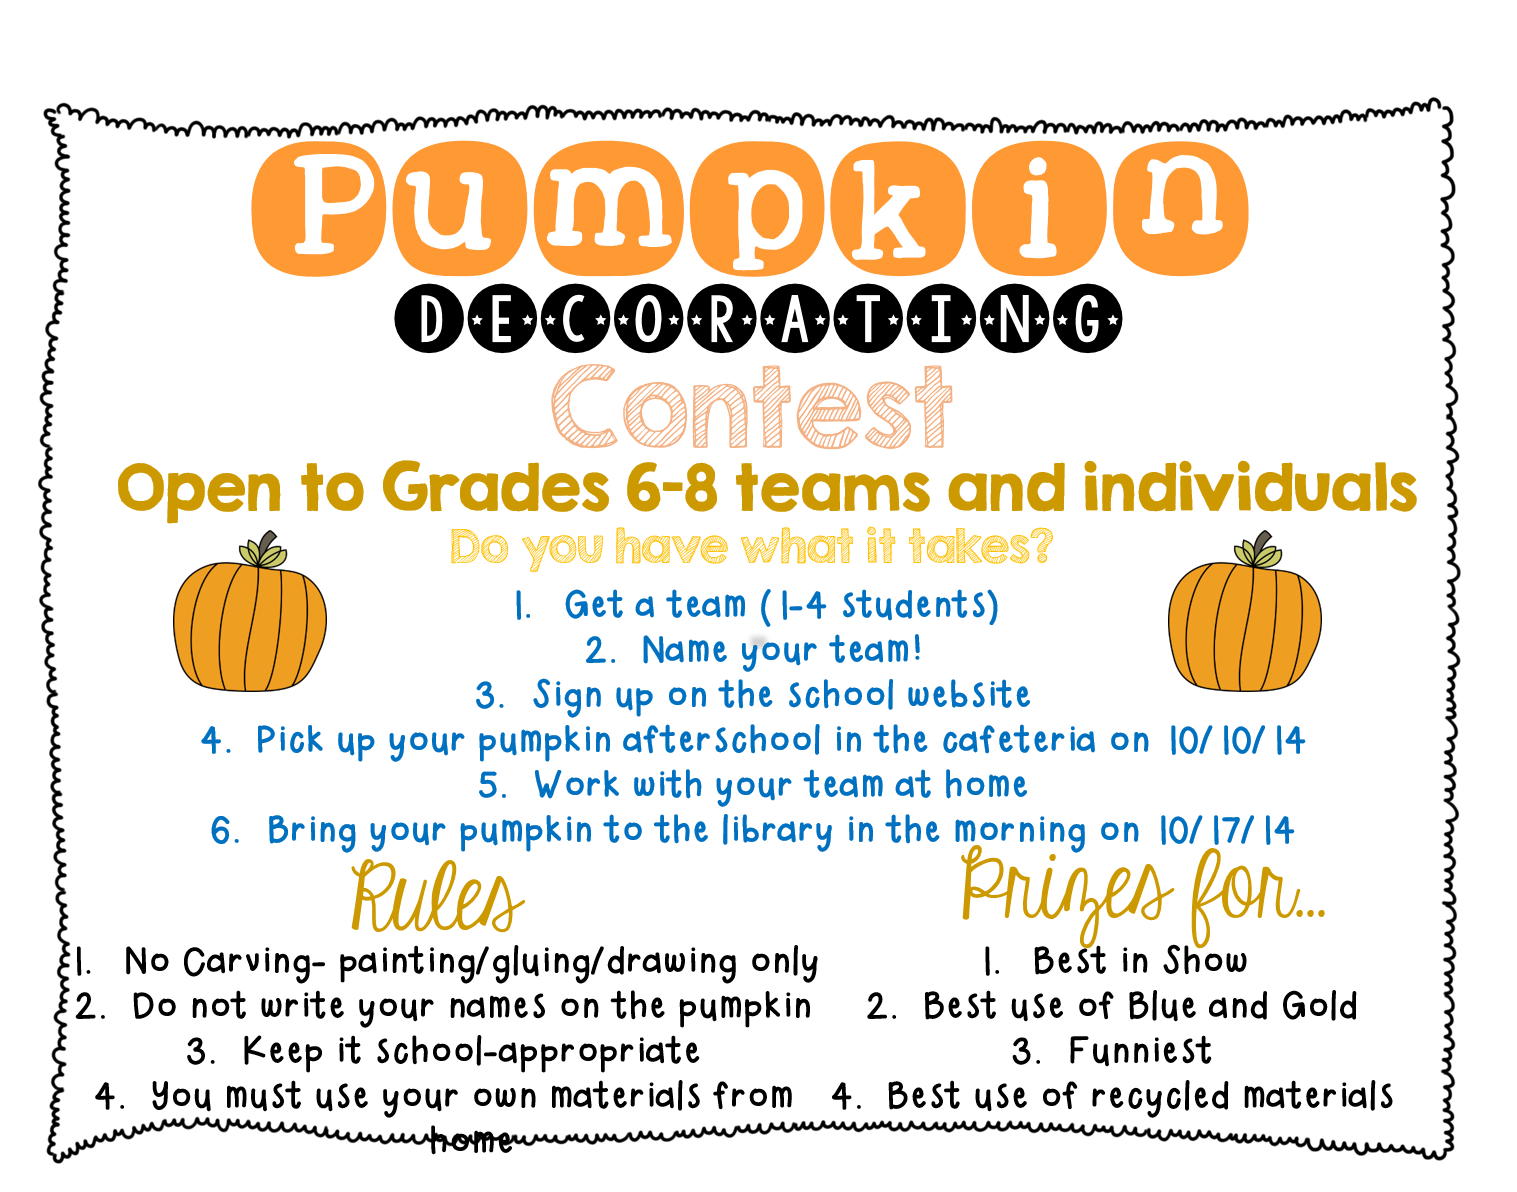 How To Plan A Pumpkin Decorating Contest Everyone